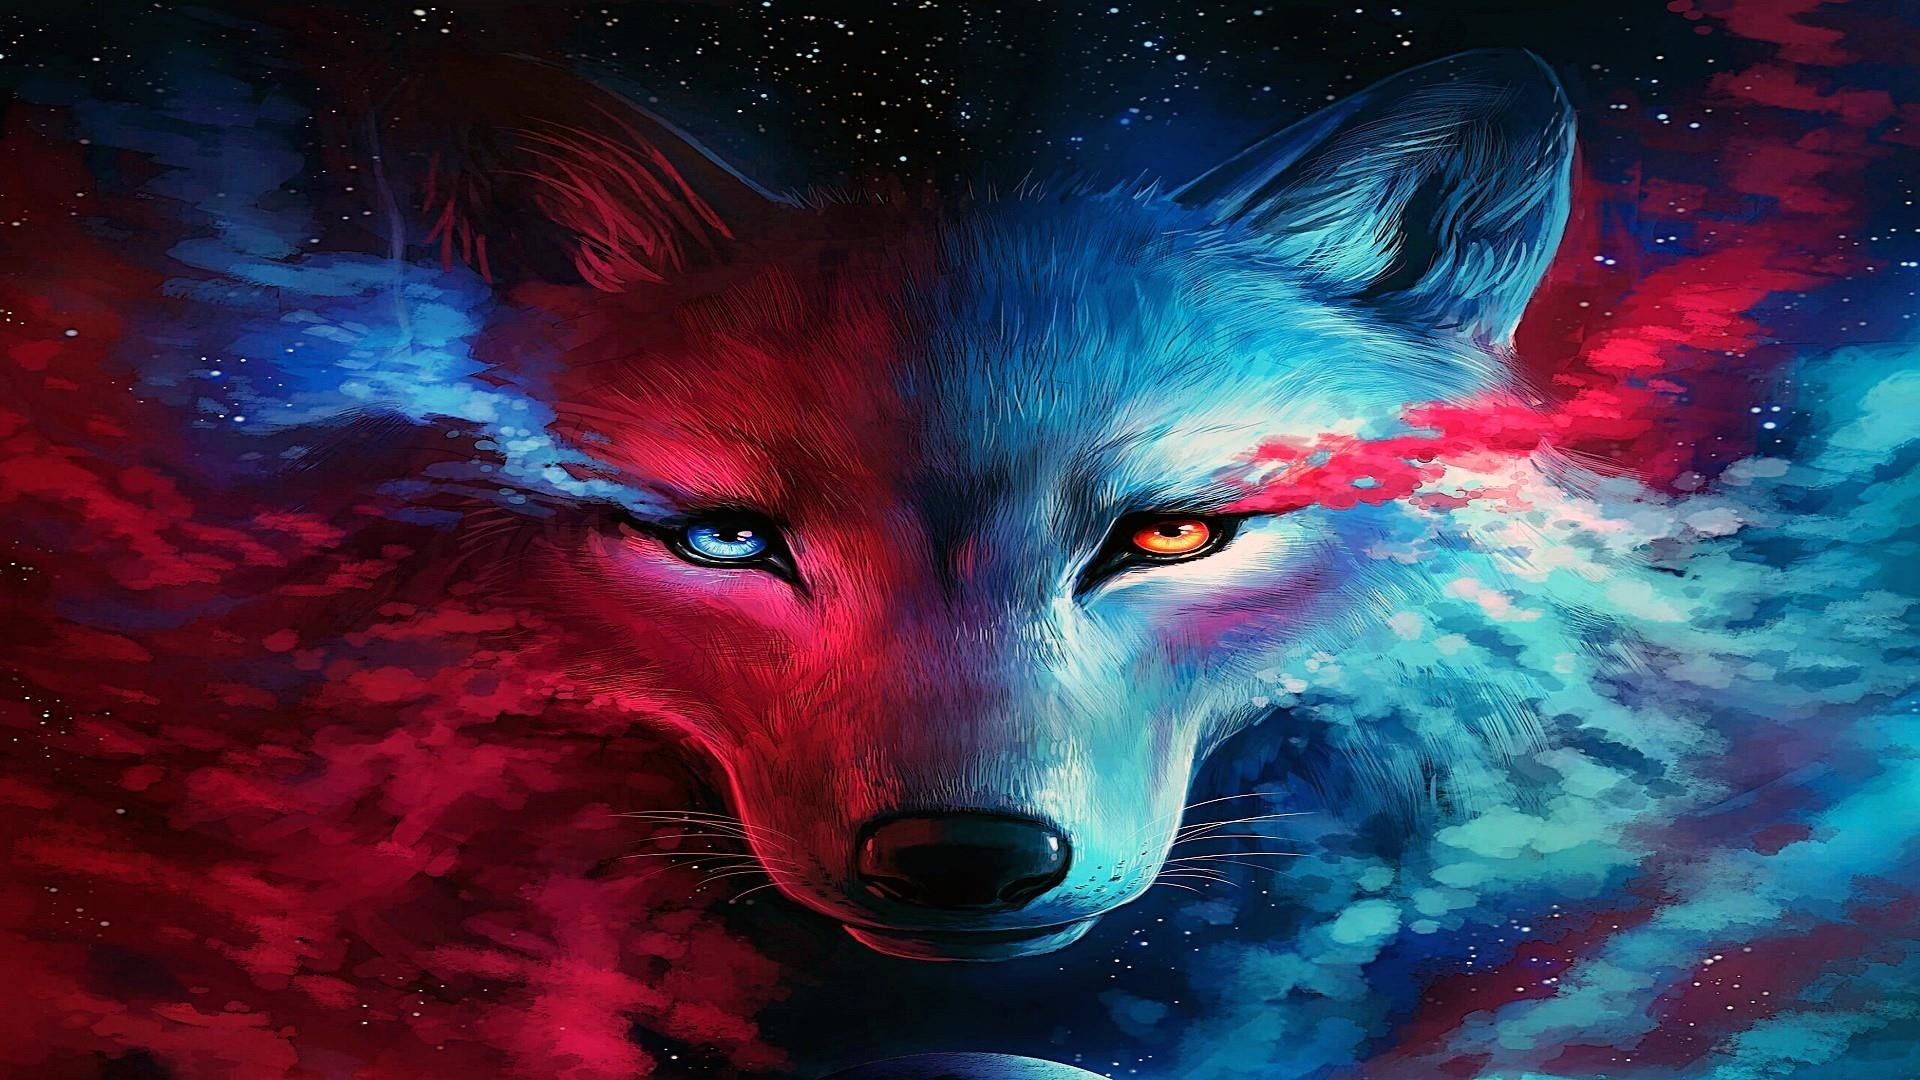 1920x1080  Galaxy Wolf Wallpaper | Wallpaper Studio 10 | Tens of thousands  HD and UltraHD wallpapers for Android, Windows and Xbox